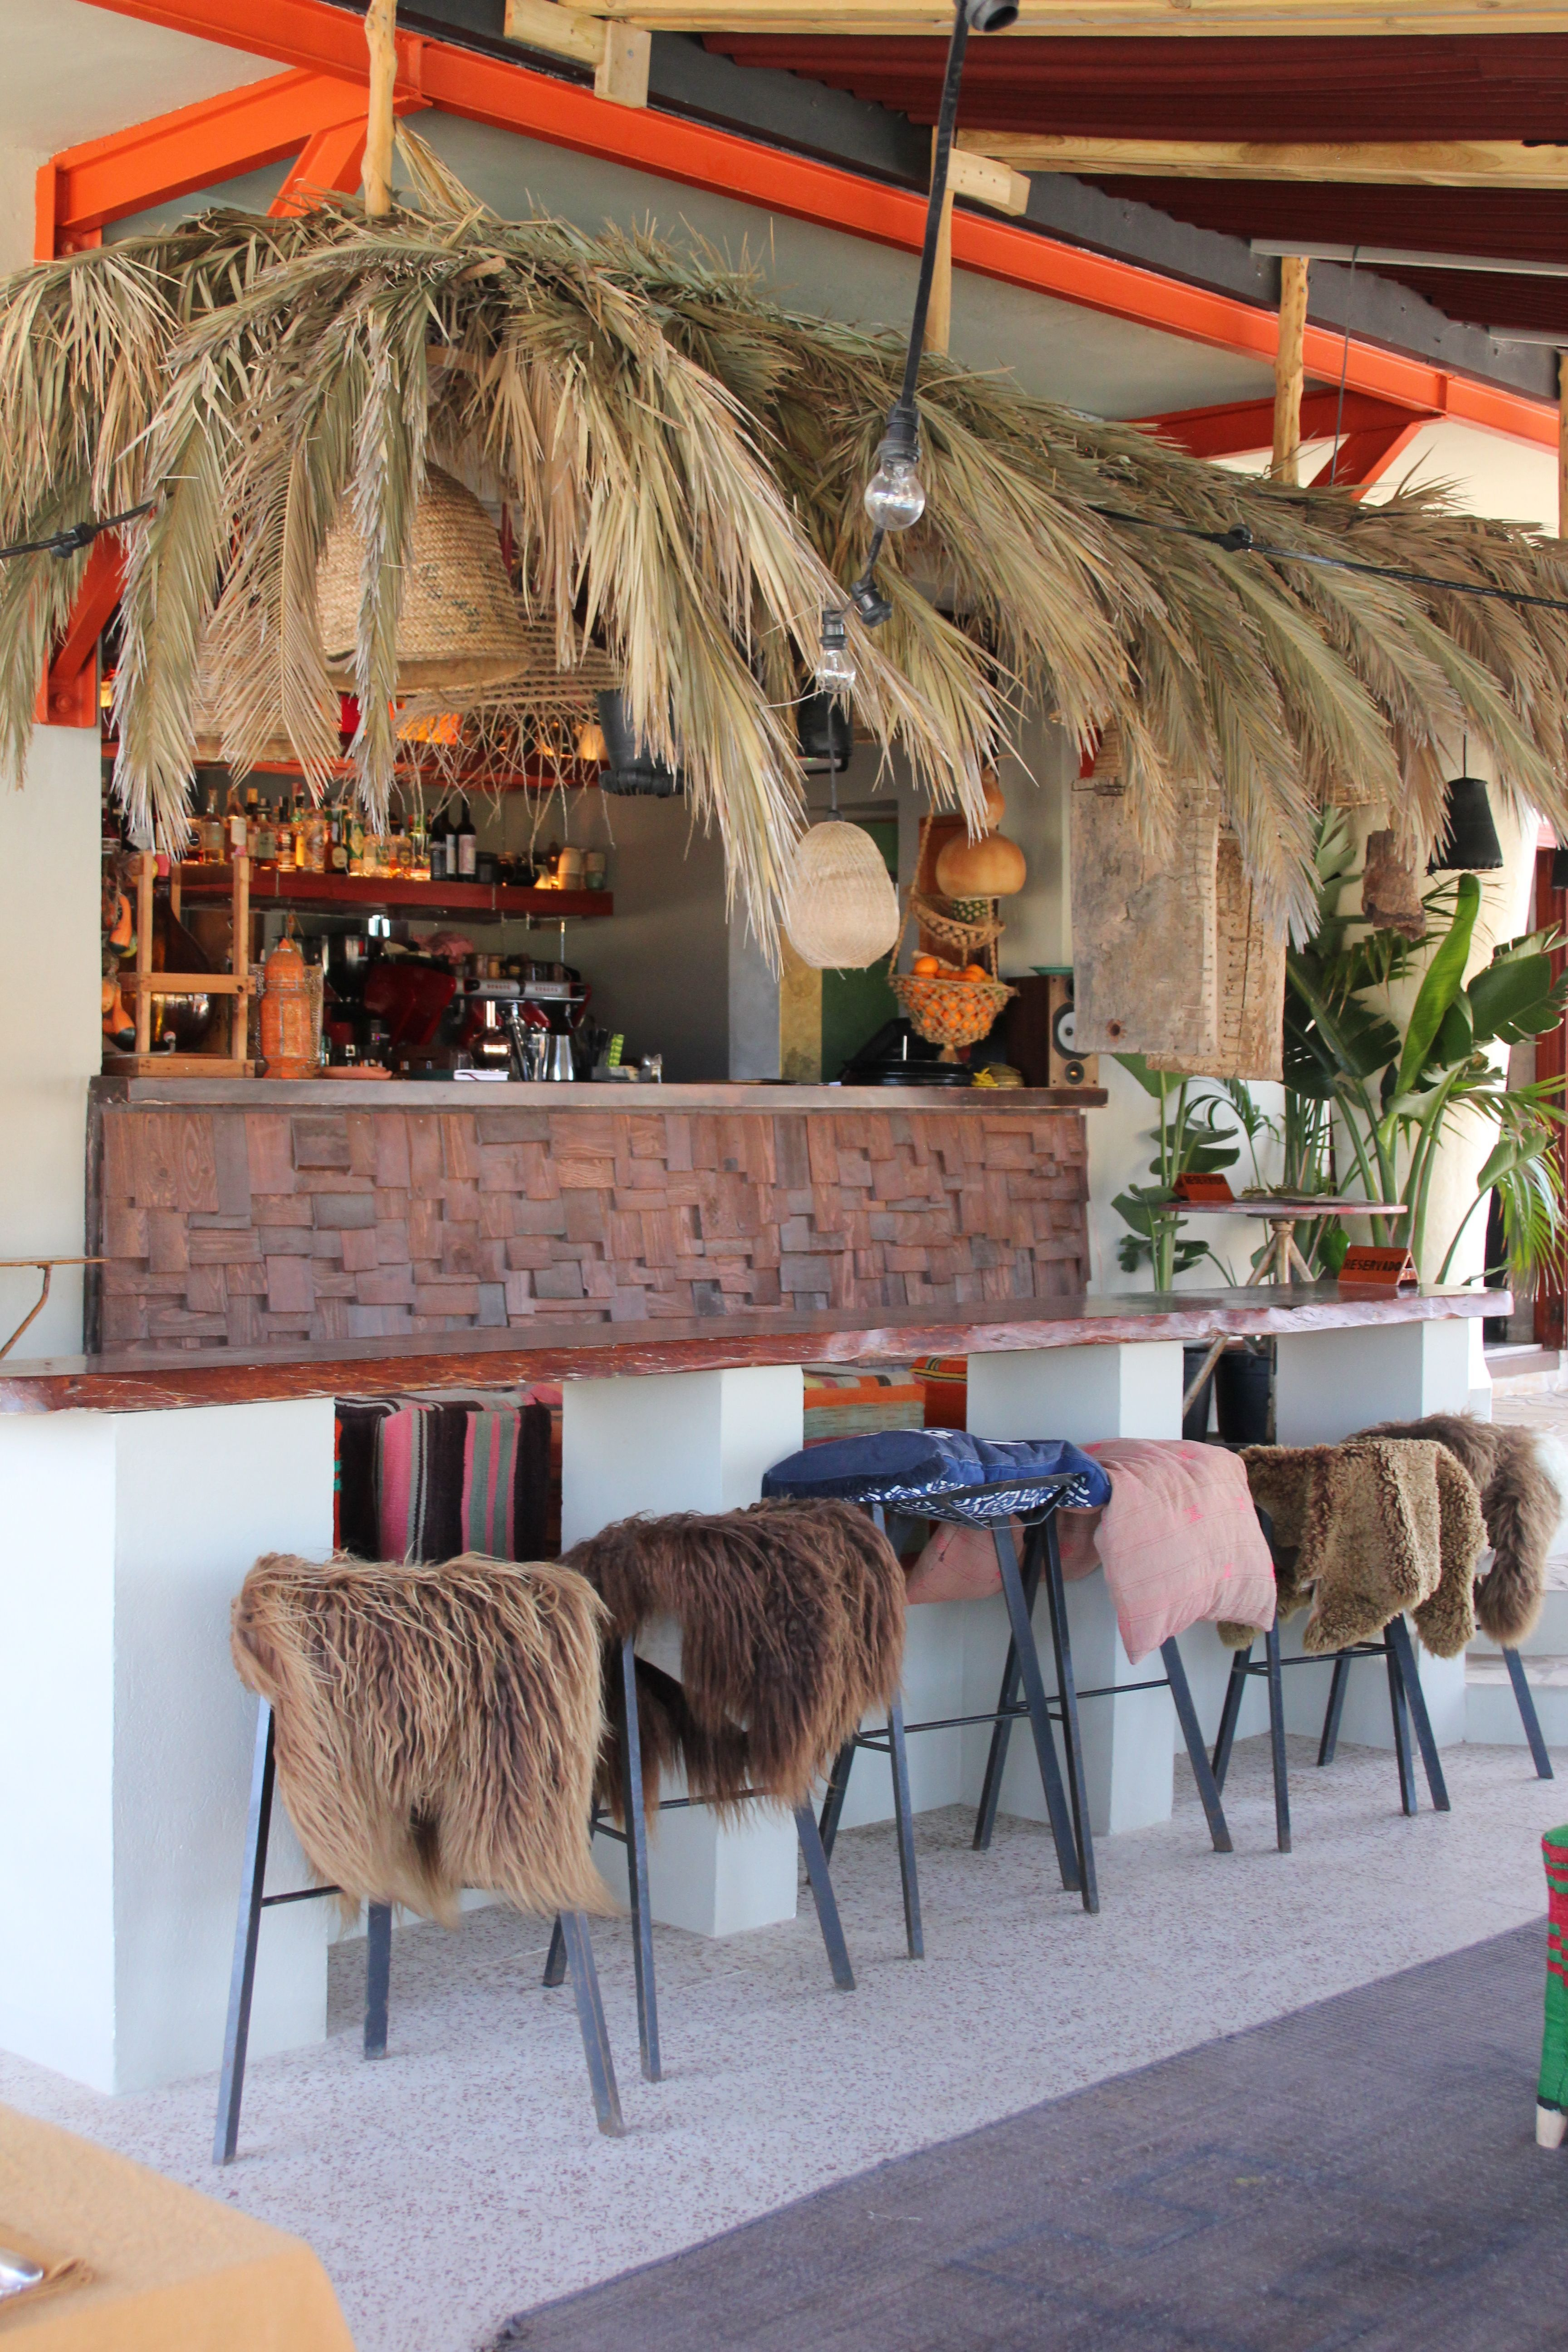 Los Enamorados Hotel Ibiza Outside Bar Sun Summer Mixed Fur Chair Cocktail Vintage Hotel Hote En 2020 Decoracion Surfera Chiringuito Playa Chiringuitos